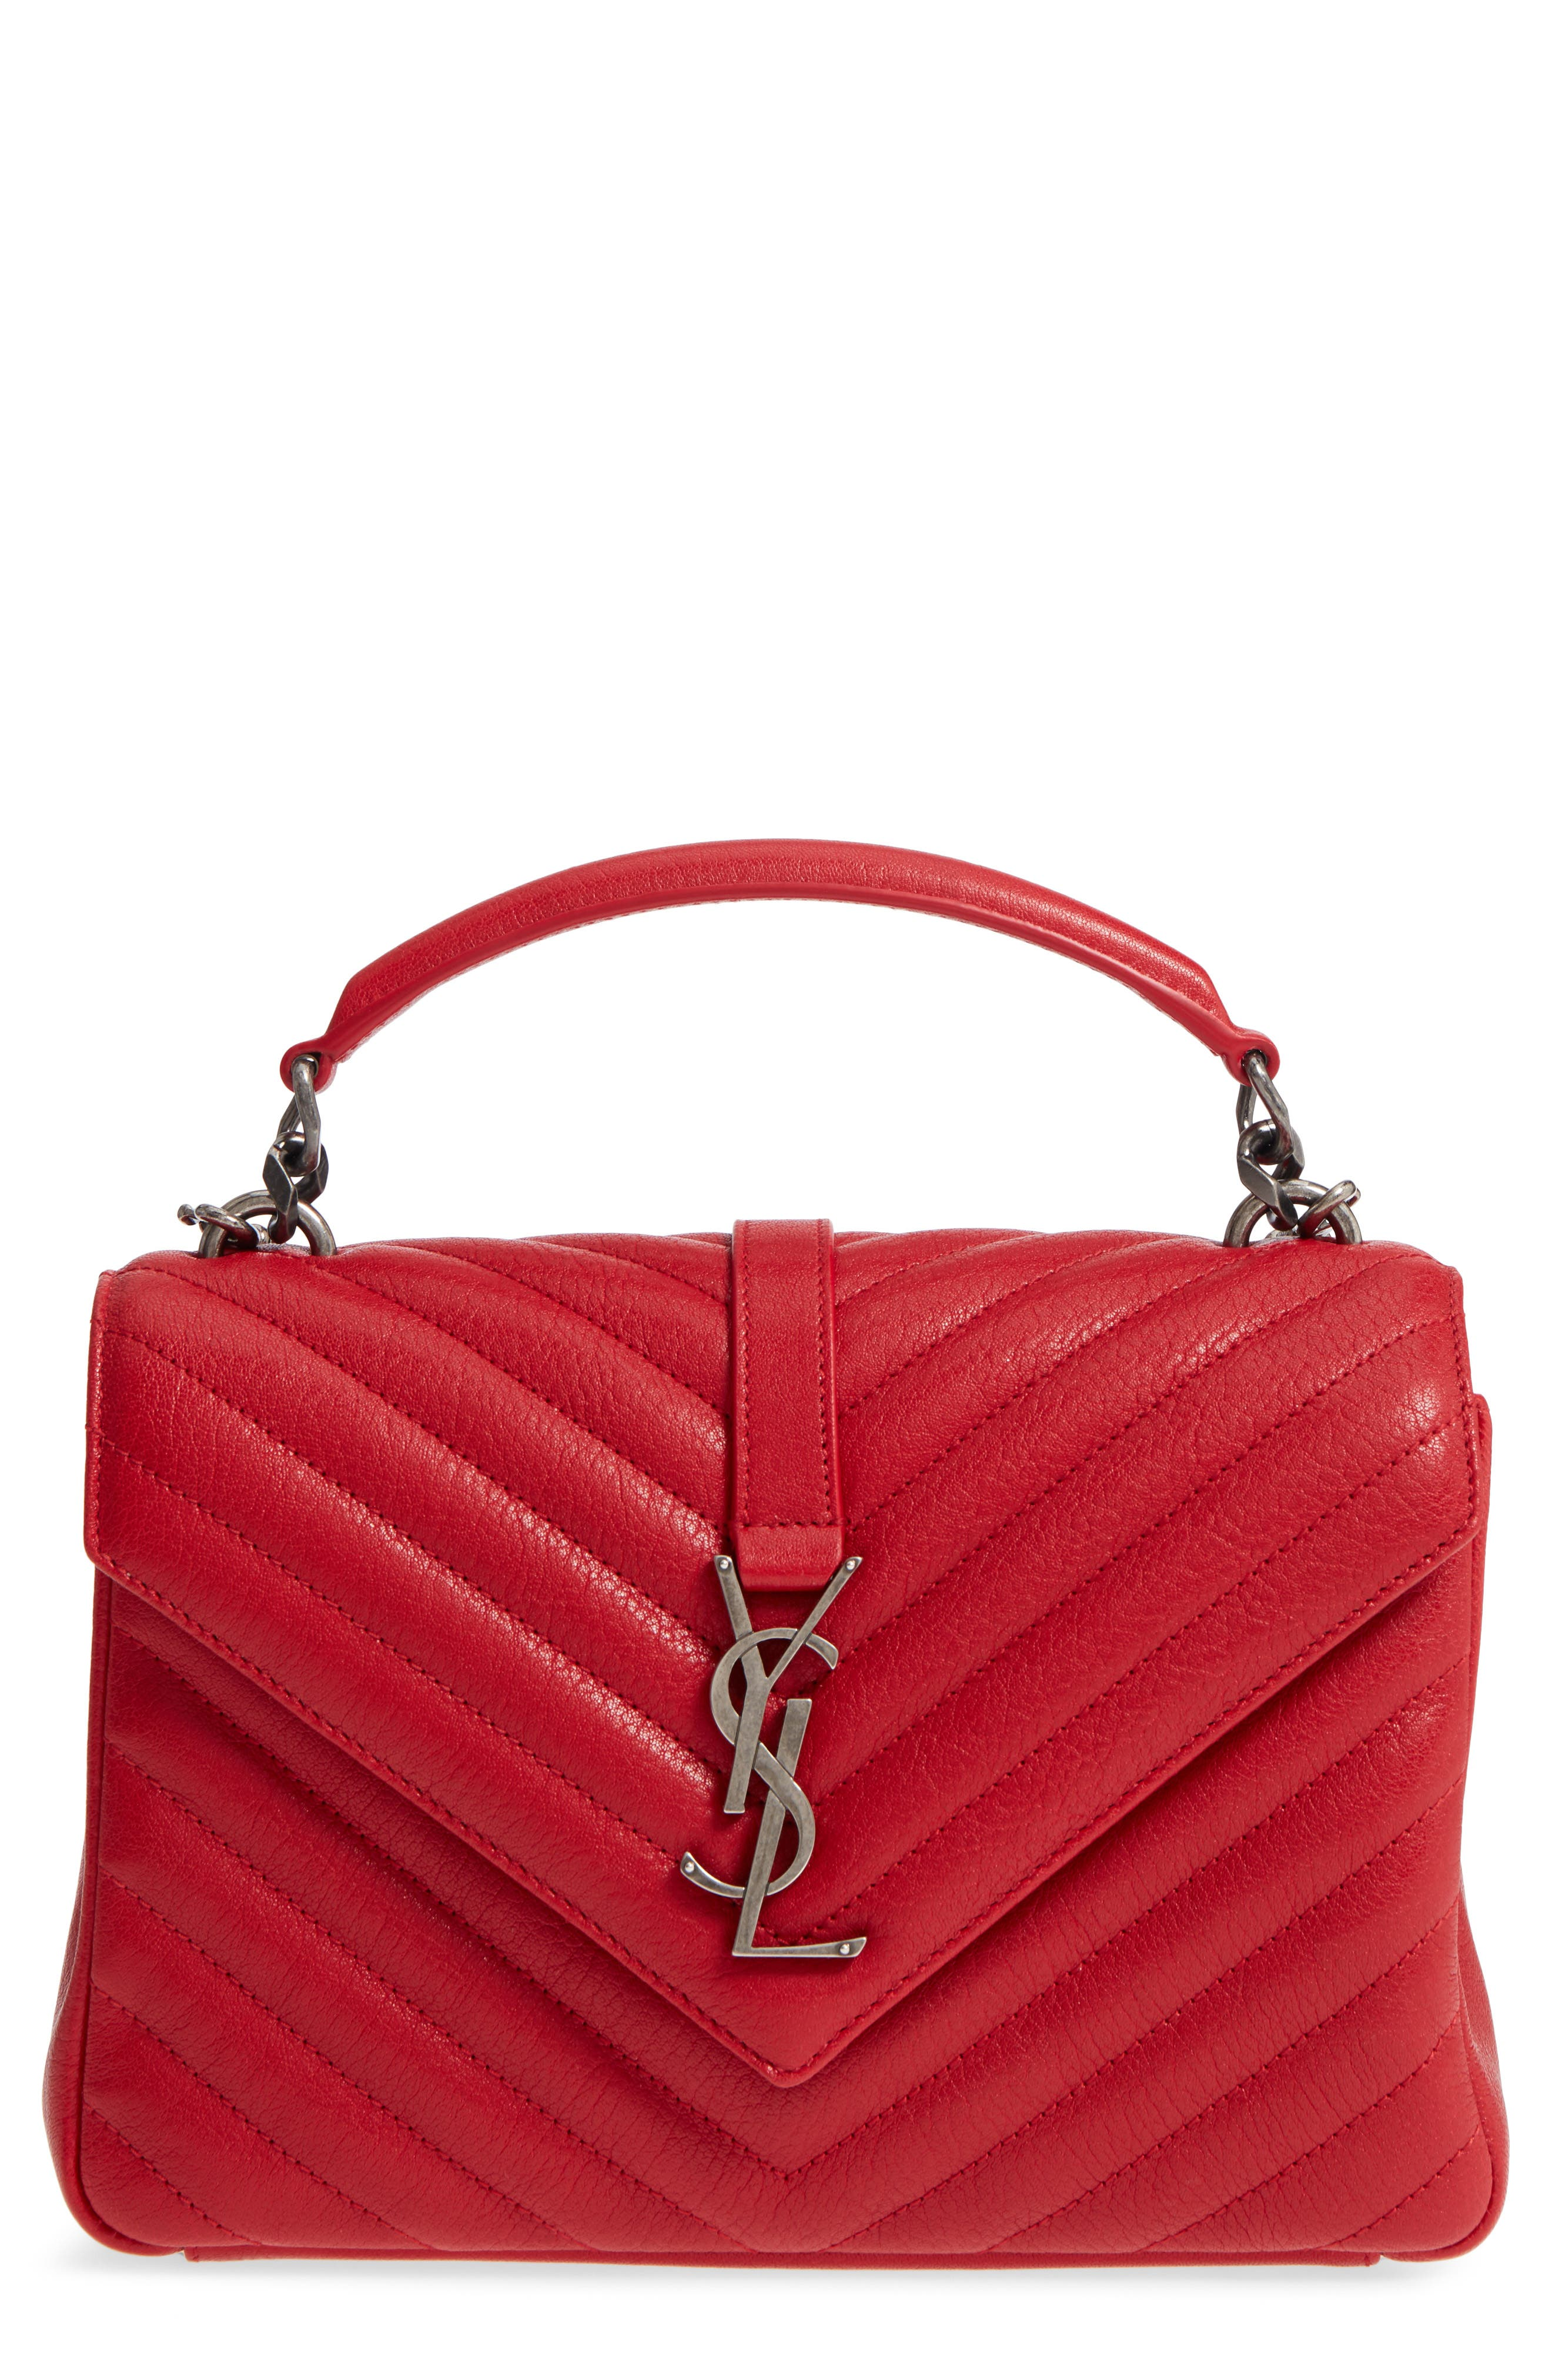 Saint Laurent Medium College Quilted Leather Shoulder Bag